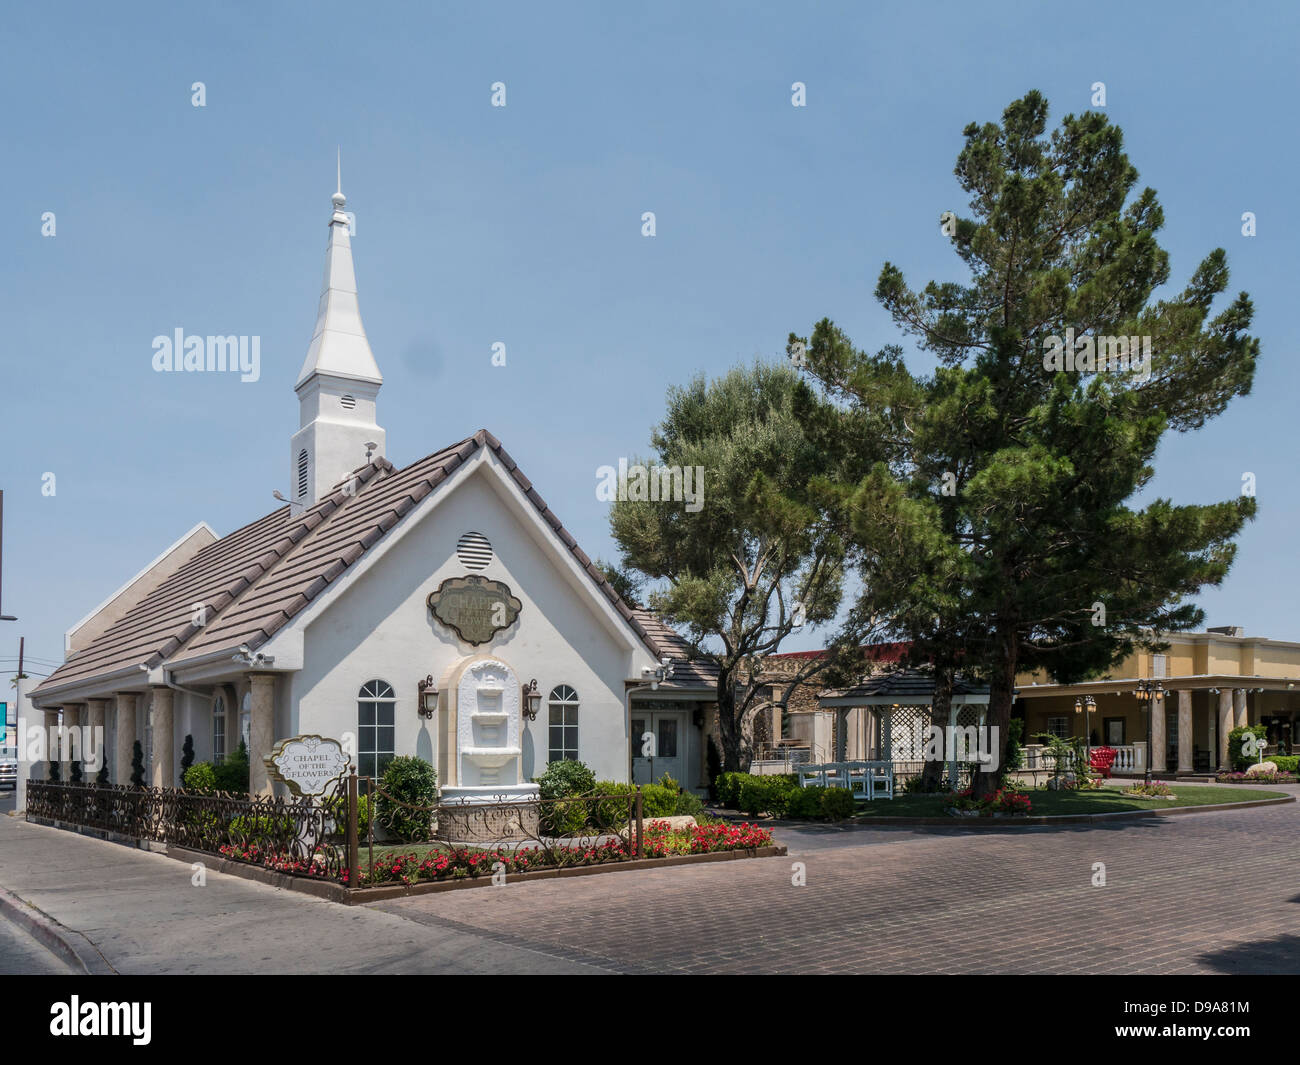 Chapel of the Flowers Wedding Chapel in Las Vegas Nevada Stock Roya